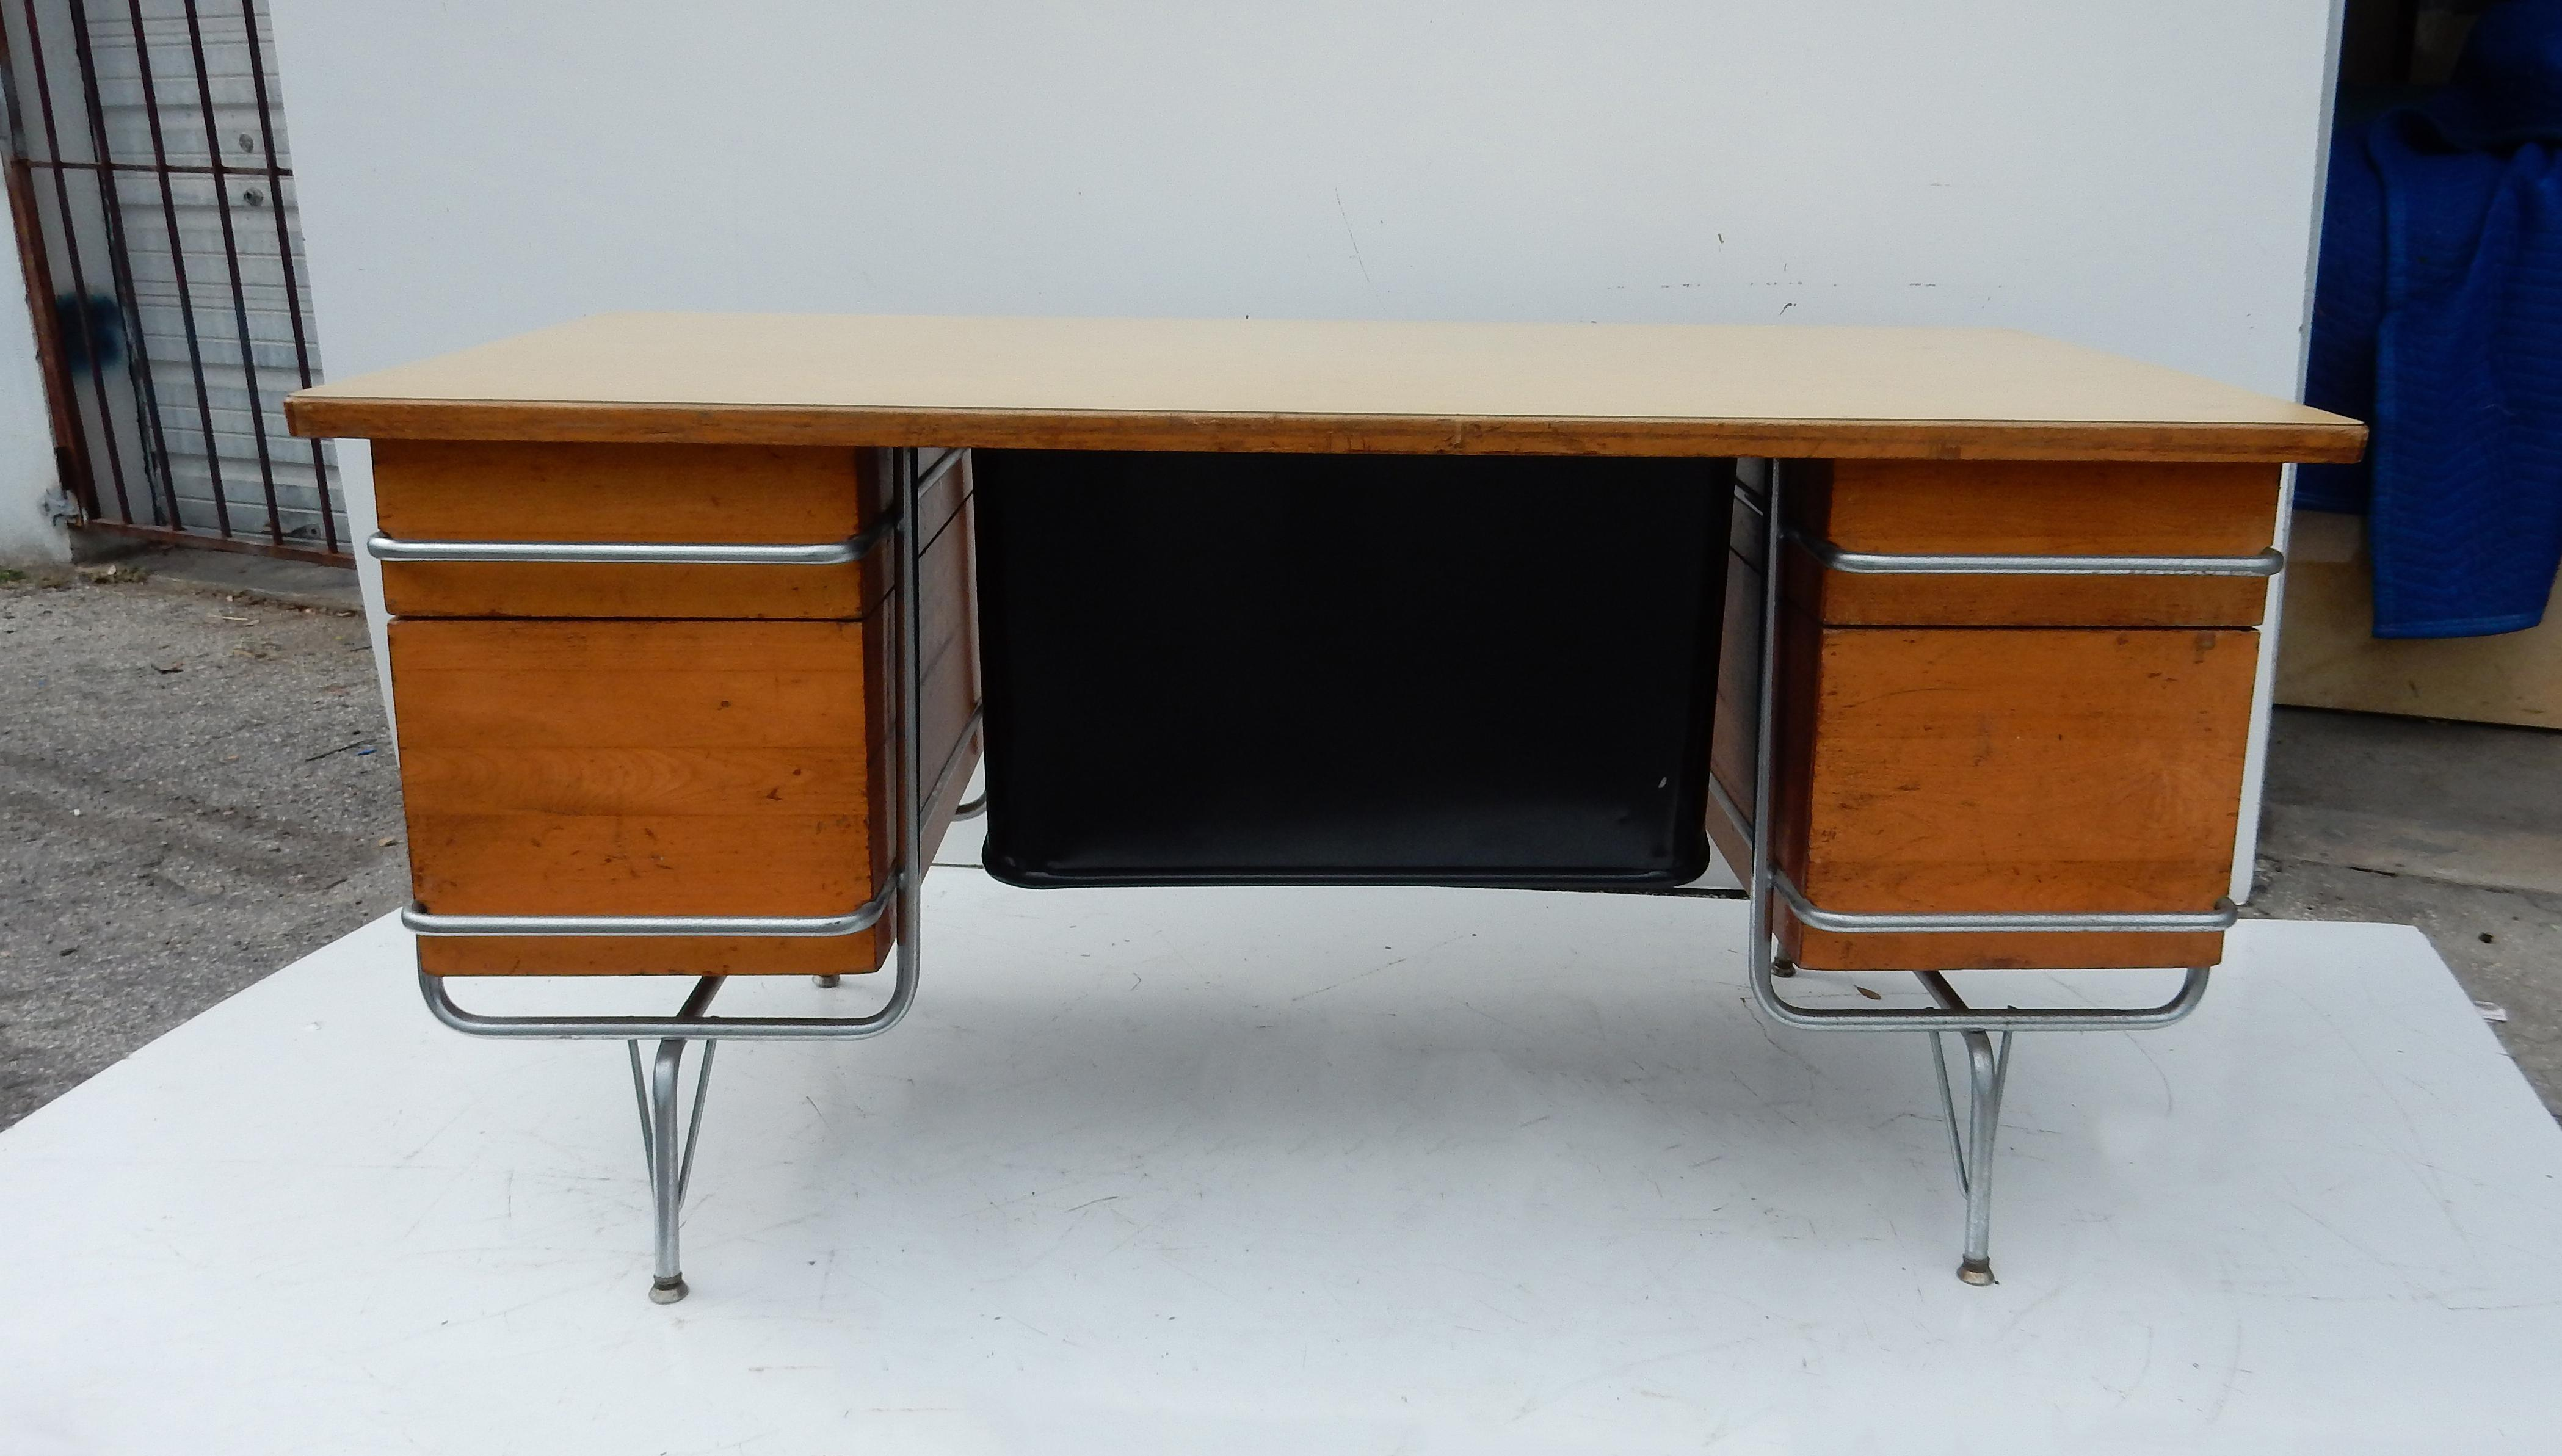 Original Kem Weber Heywood-Wakefield Trimline Desk : Chairish